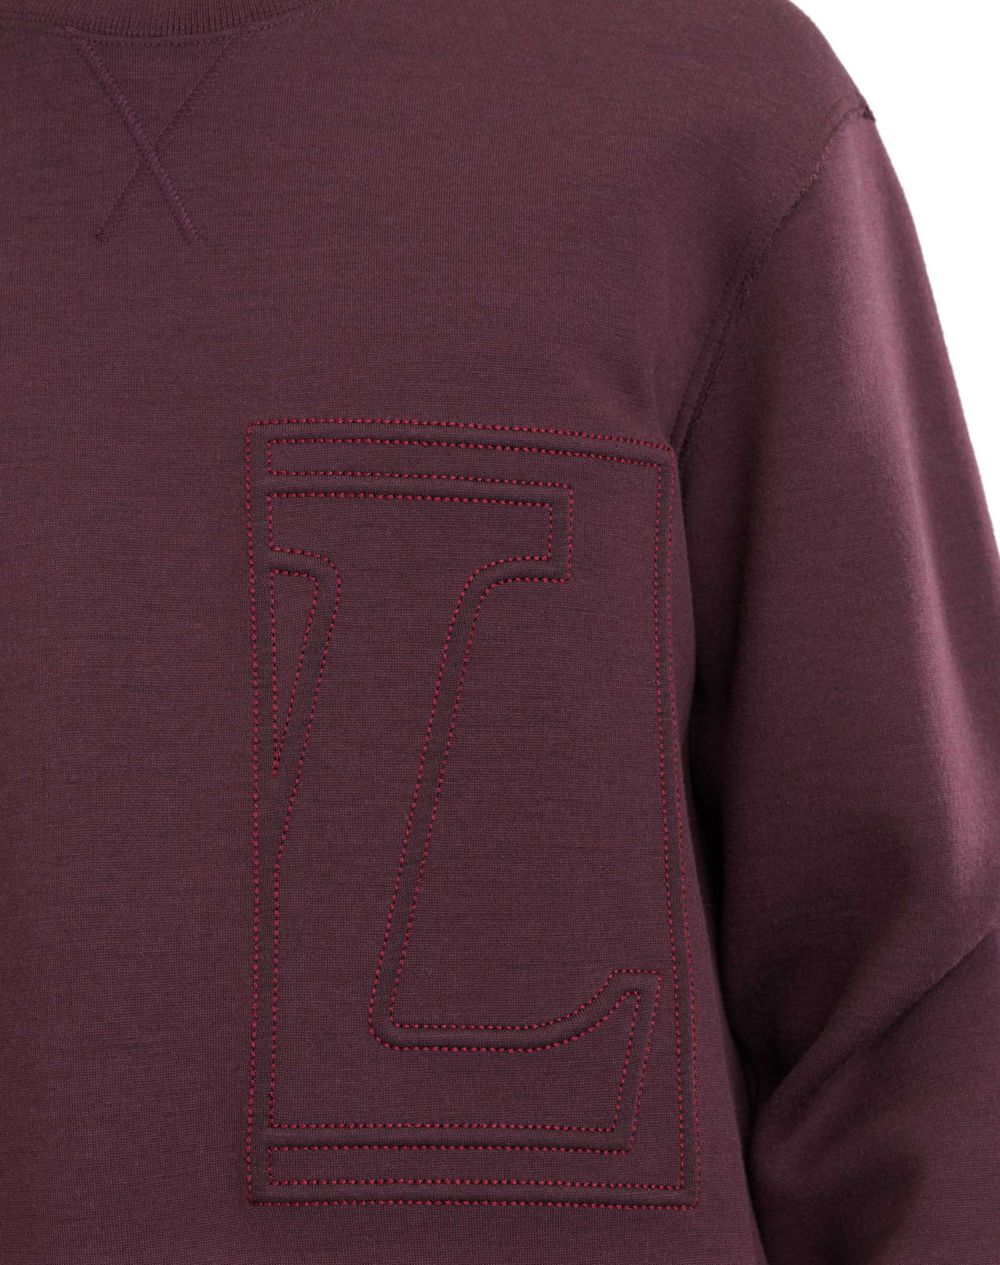 "SWEATSHIRT WITH ""L"" APPLIQUÉ - Lanvin"